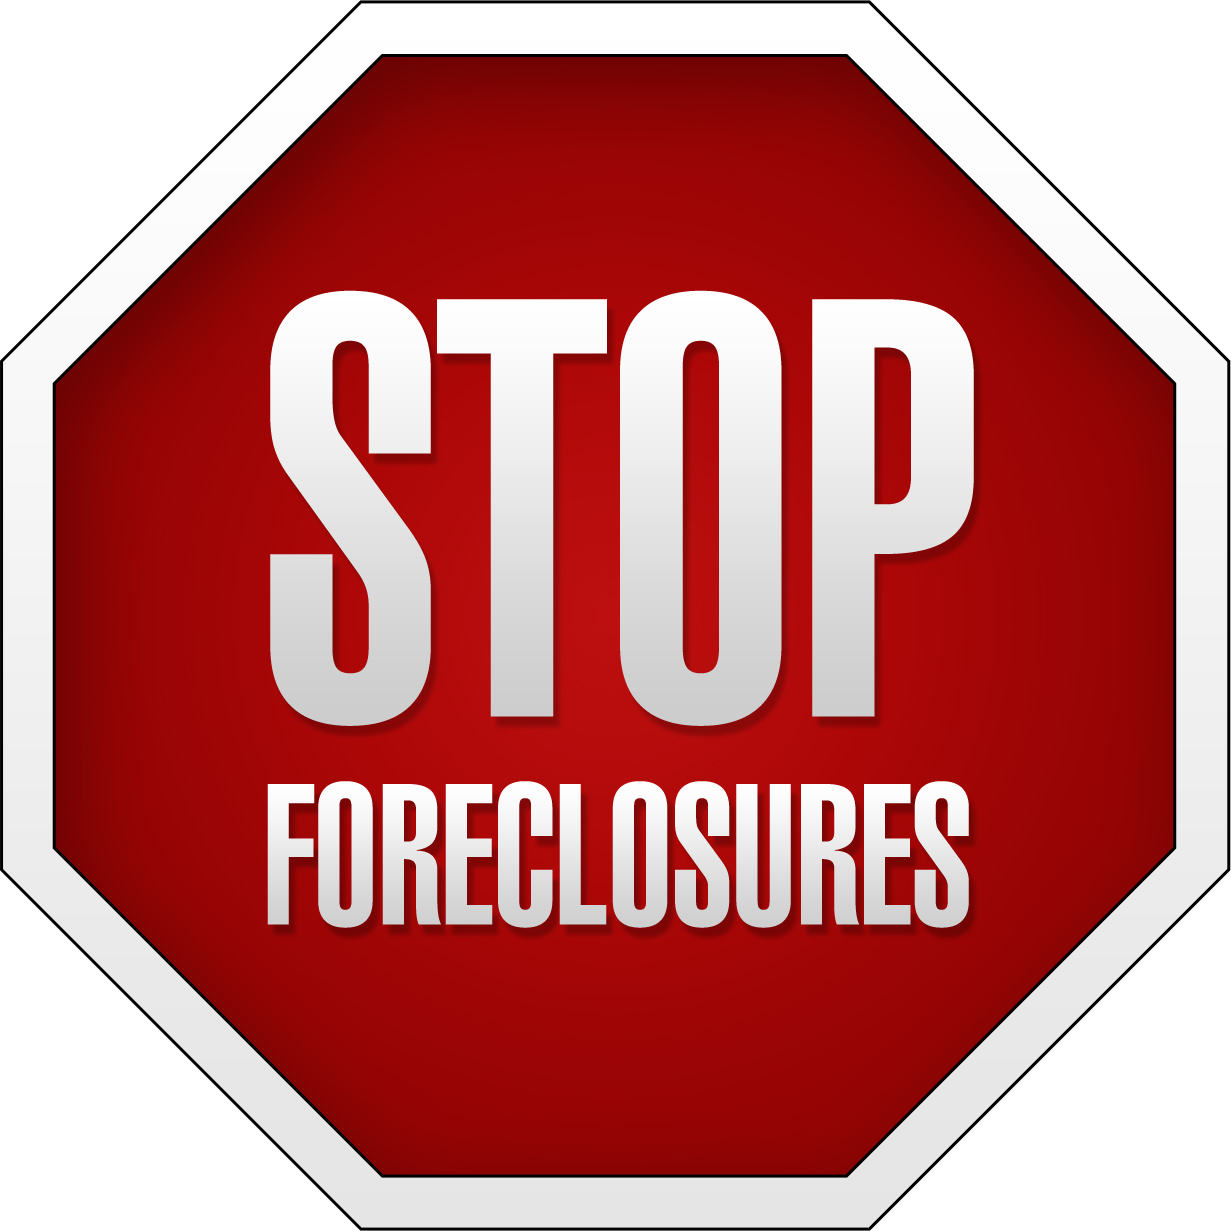 stop-foreclosures now.jpg